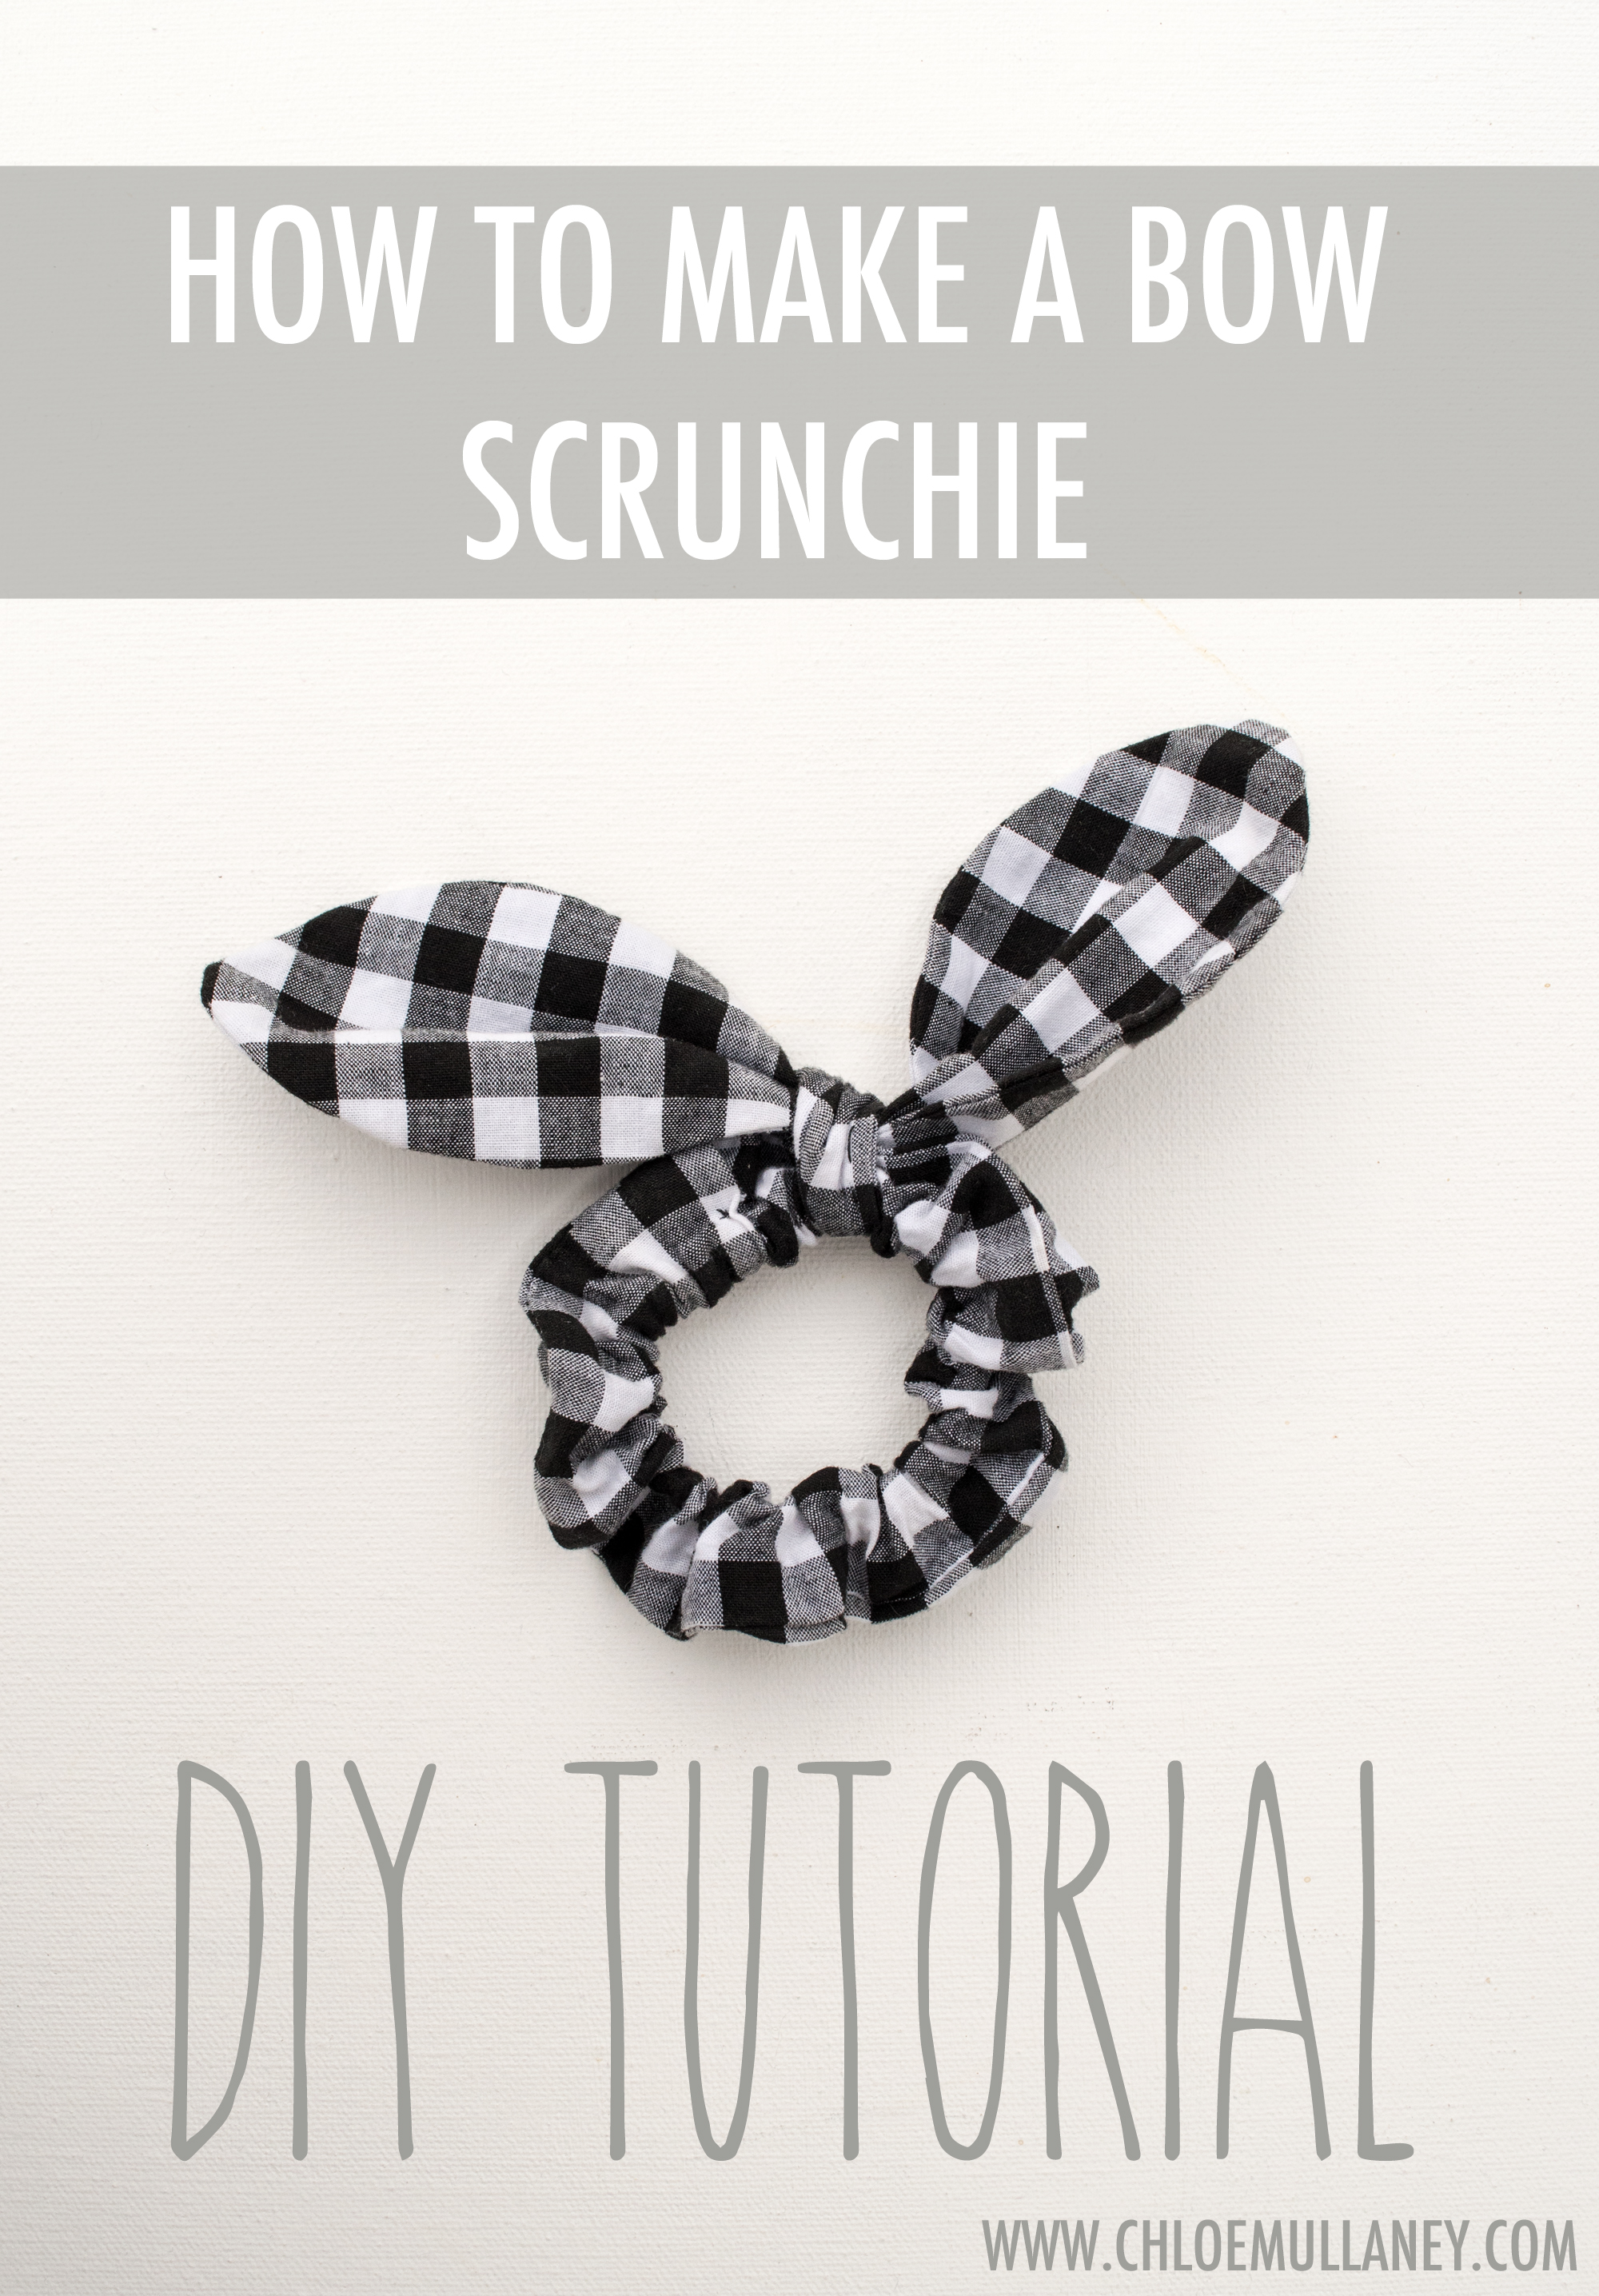 How to make a bow scrunchie free DIY sewing tutorial